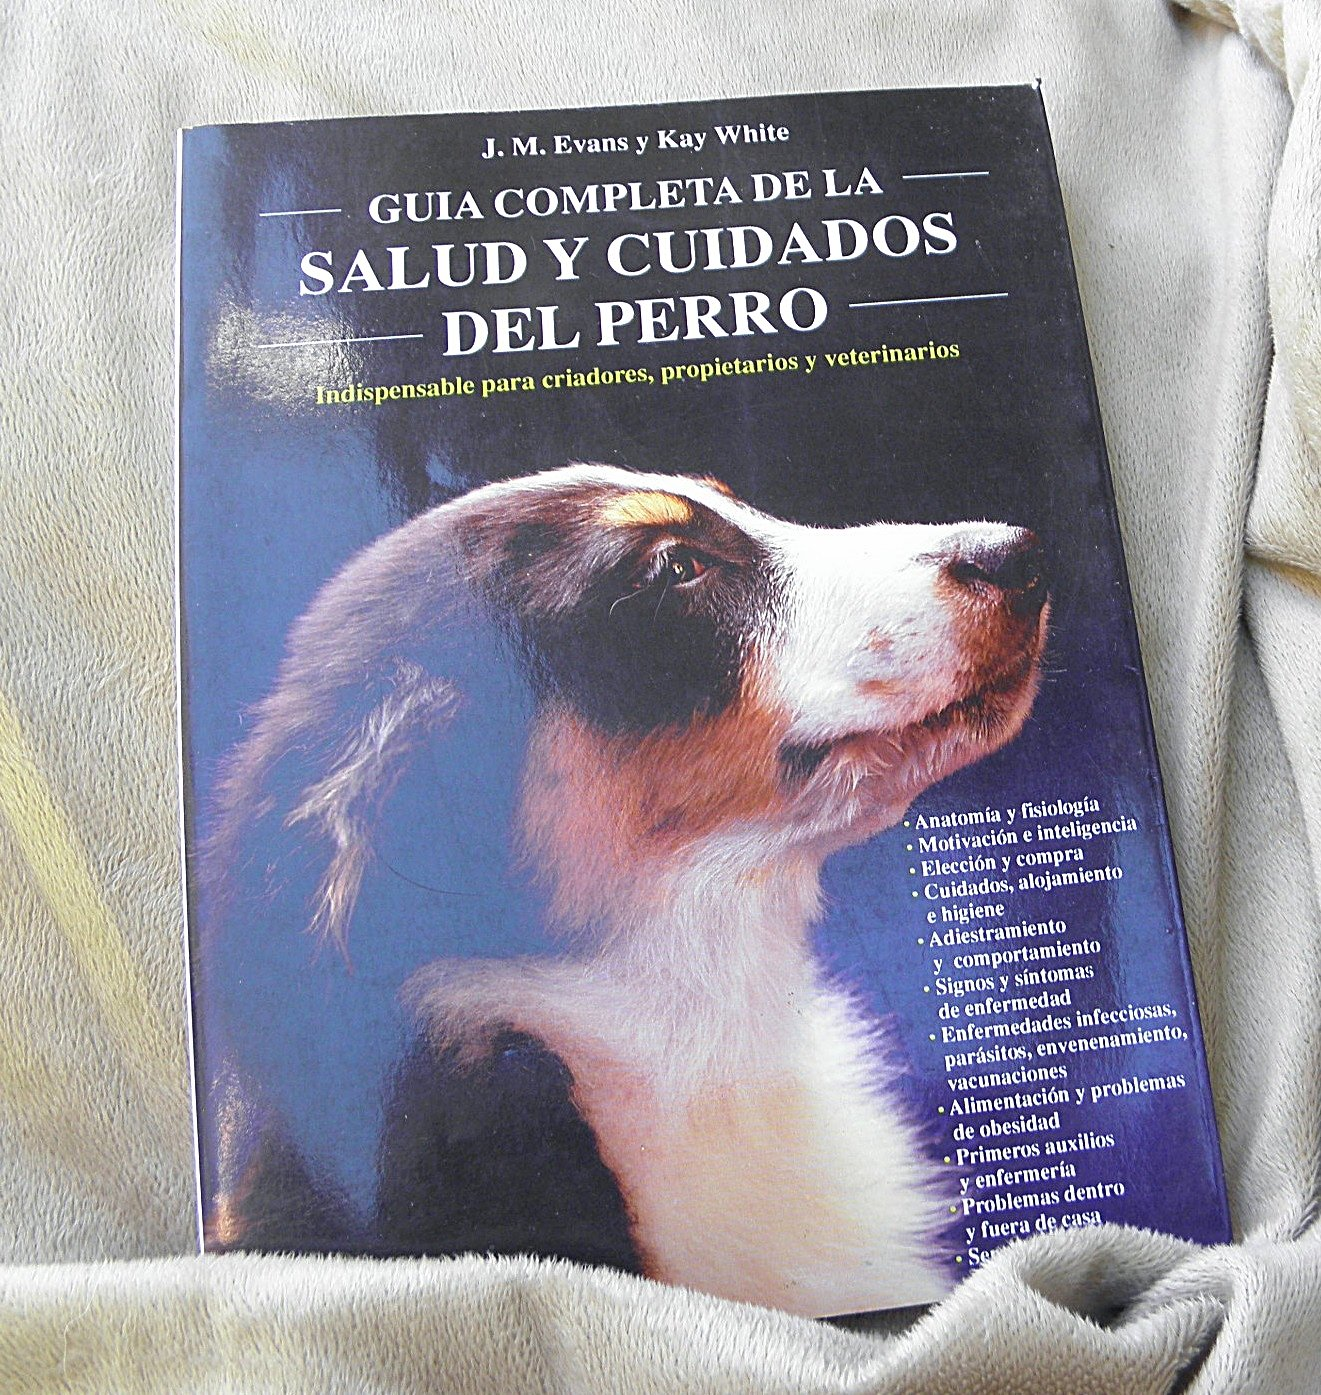 Guia completa de la salud y cuidados del perro/ The Doglopaedia: A Complete Guide to Dog Care (Animales Domesticos/ Domestic Animals) (Spanish Edition) by Hispano Europea (Image #1)